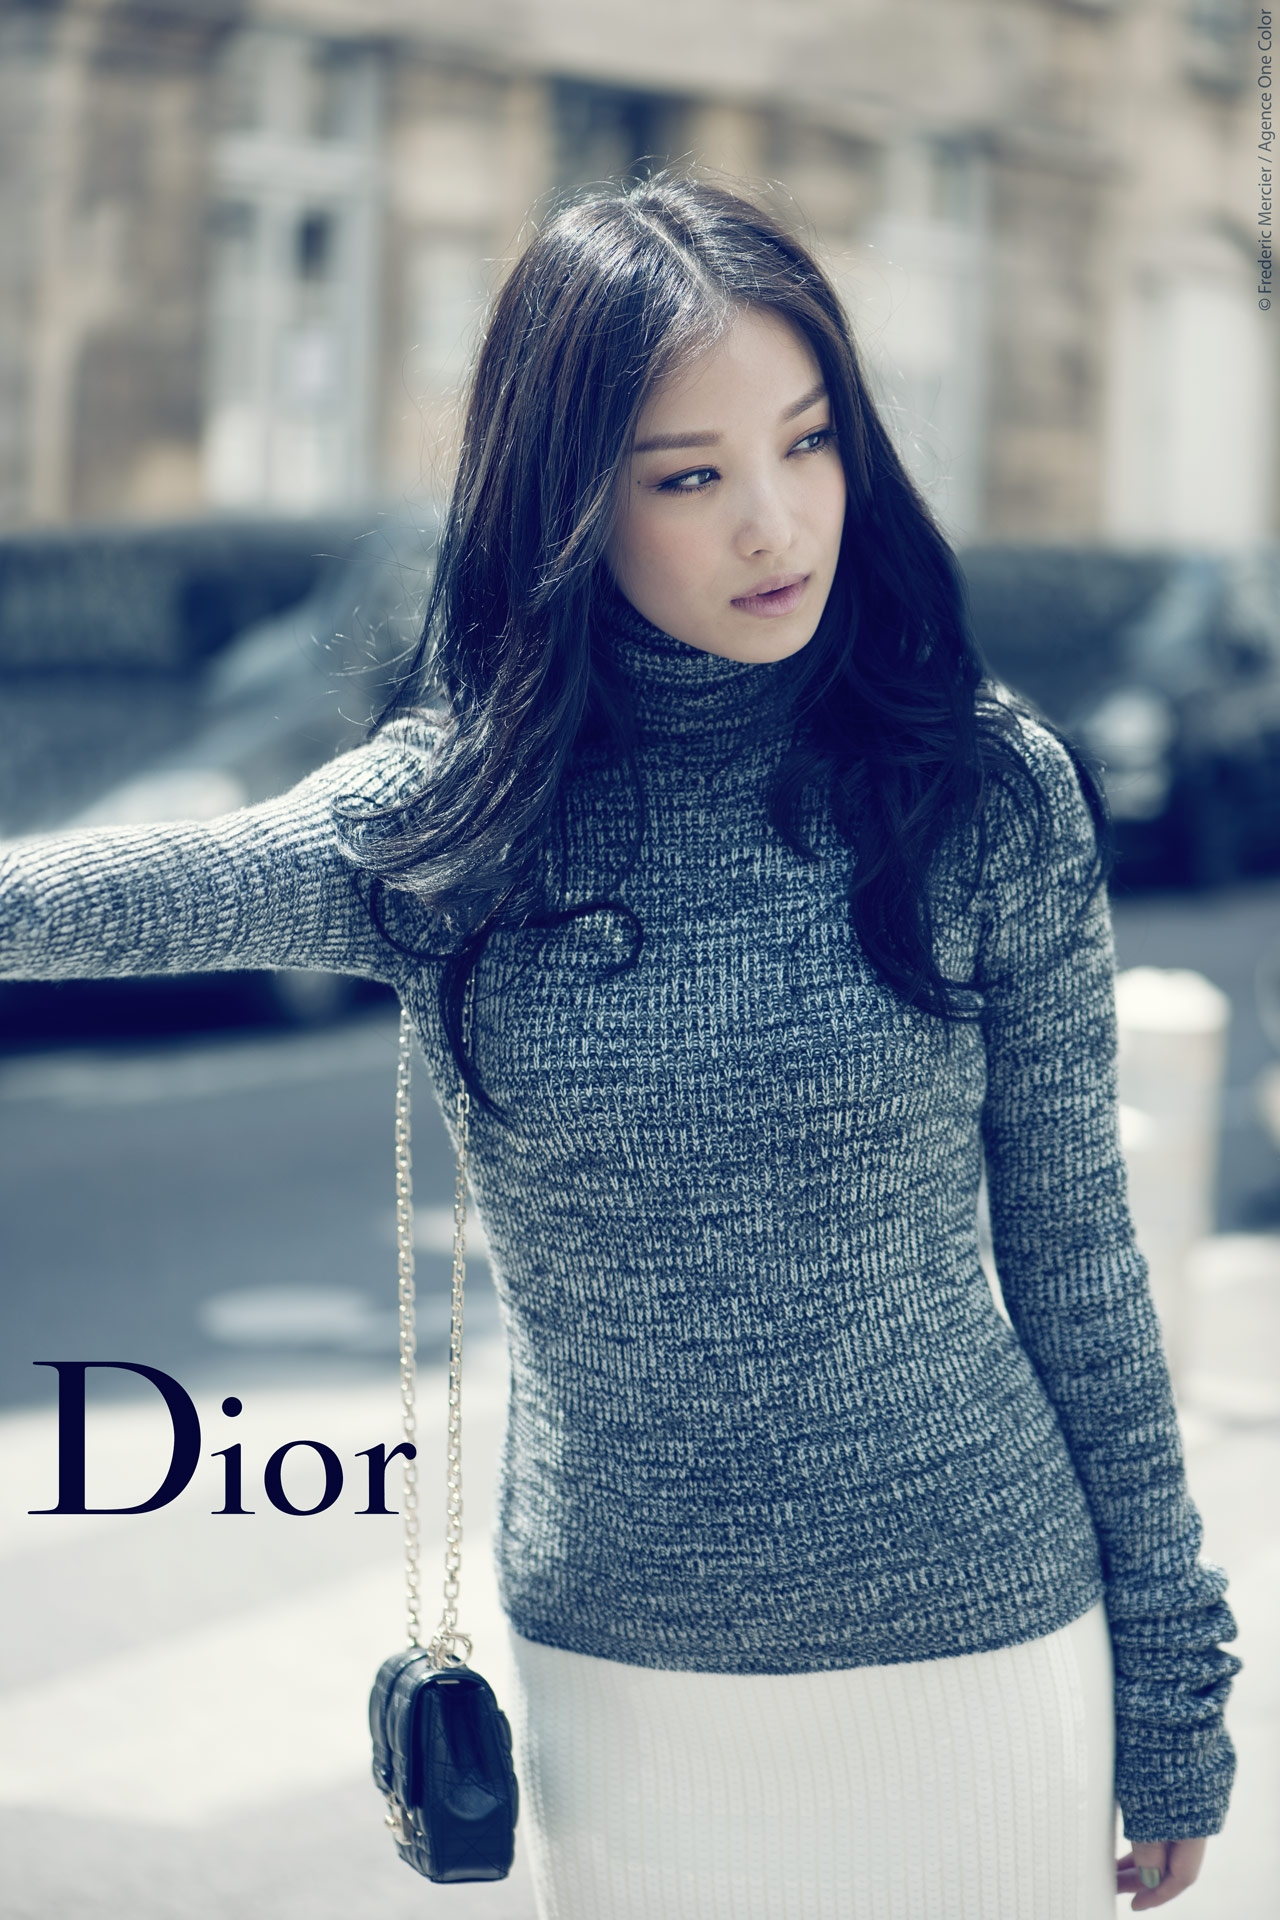 christian dior china editorial for grazia with chinese actress ni ni frederic mercier fashion photographer one color